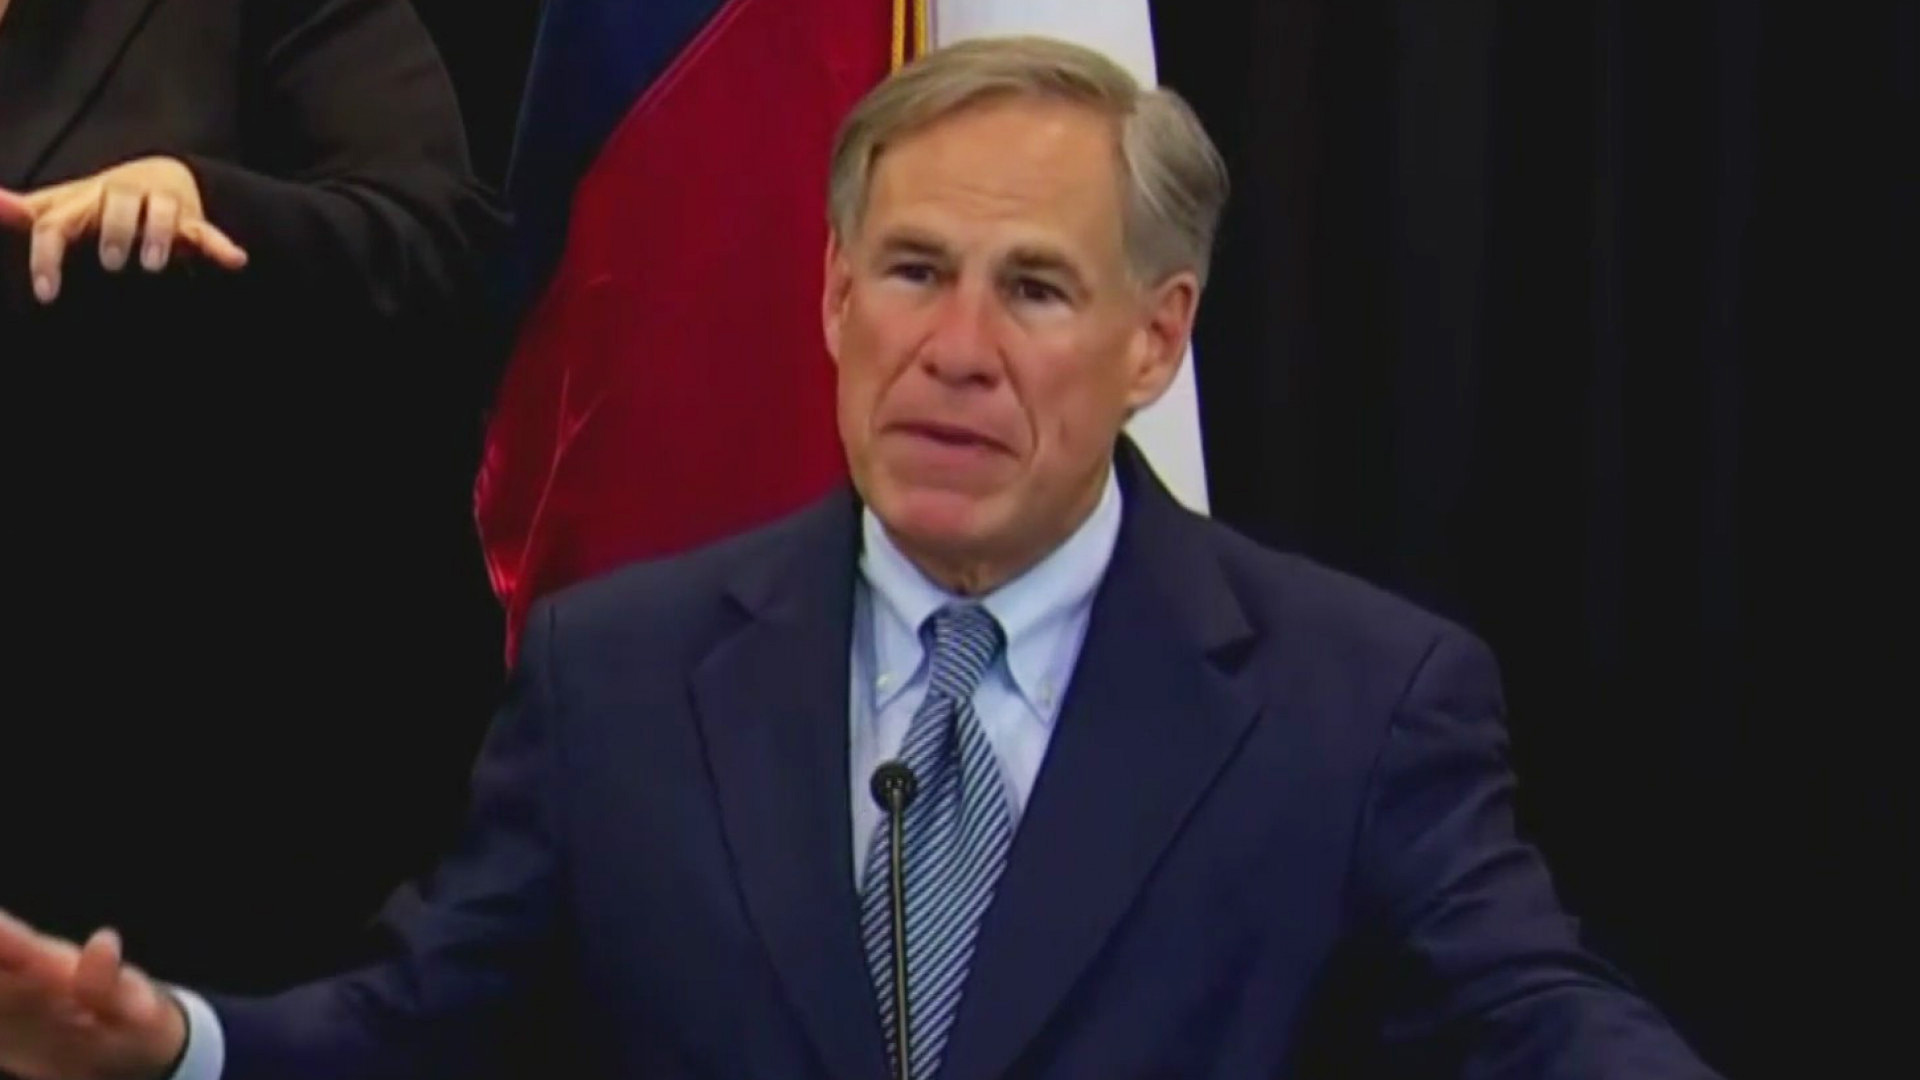 Texas Gov. Abbott says bars can soon open at 50% capacity in counties with low virus hospitalizations 6